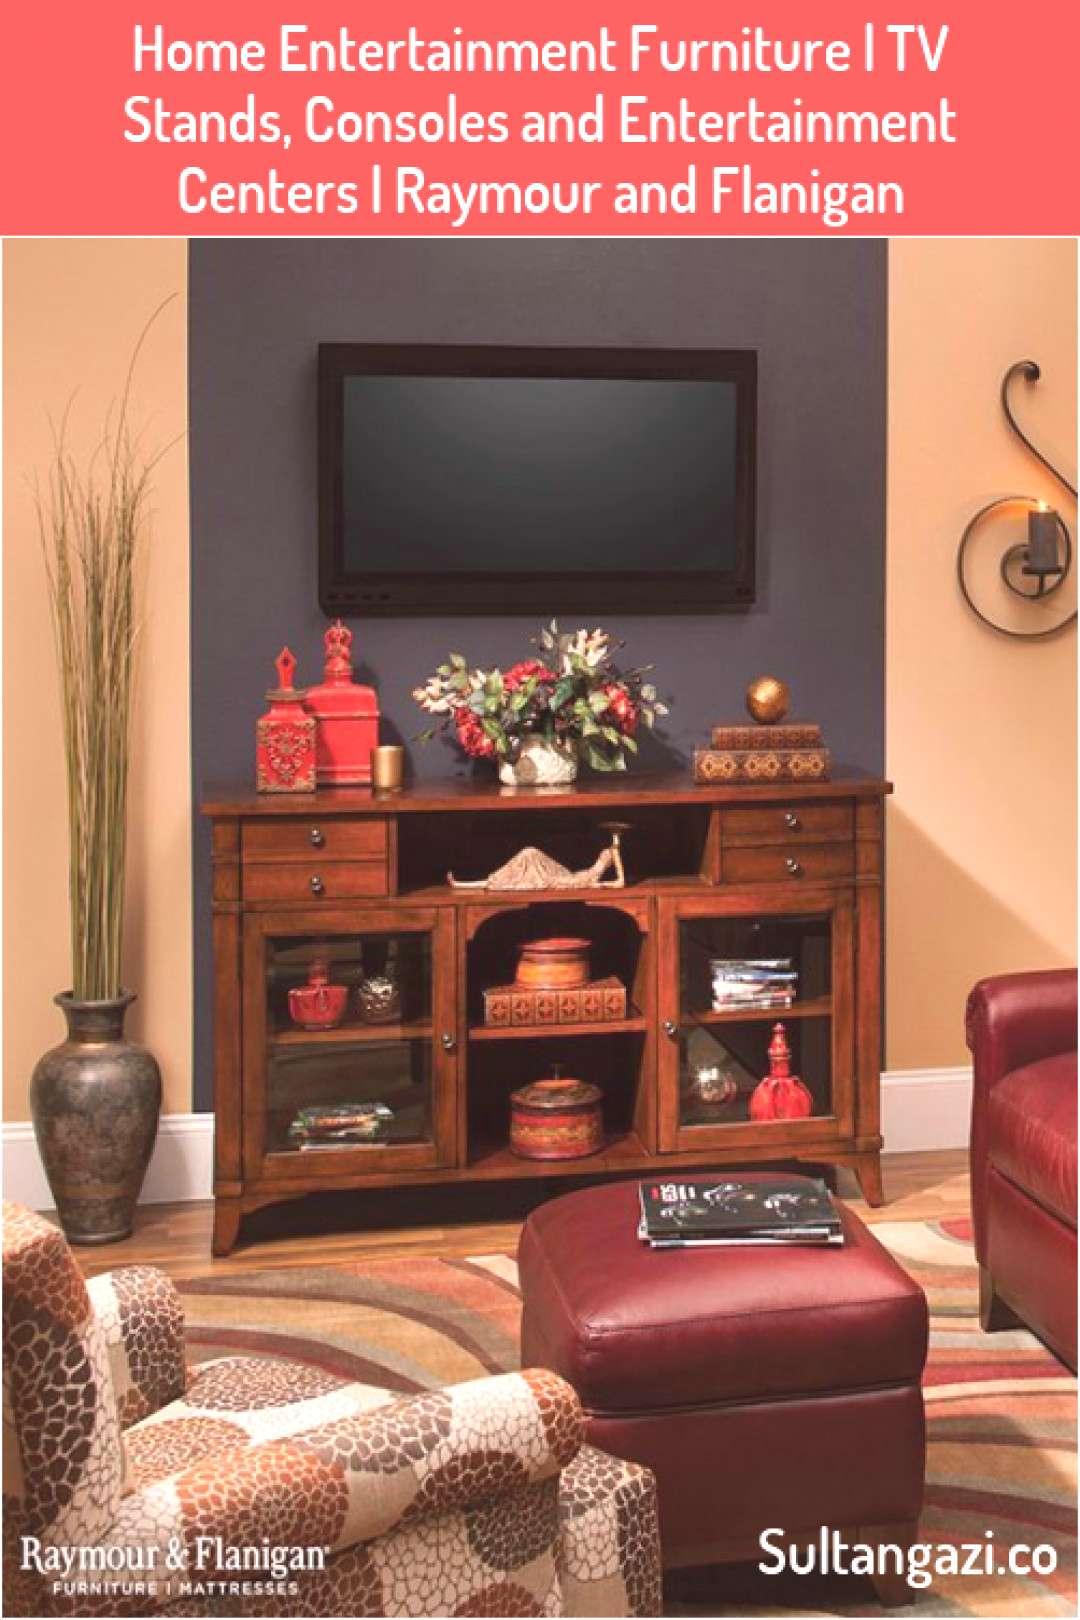 Home Entertainment Furniture  TV Stands Consoles and Entertainment Centers  Raymour and Flanigan